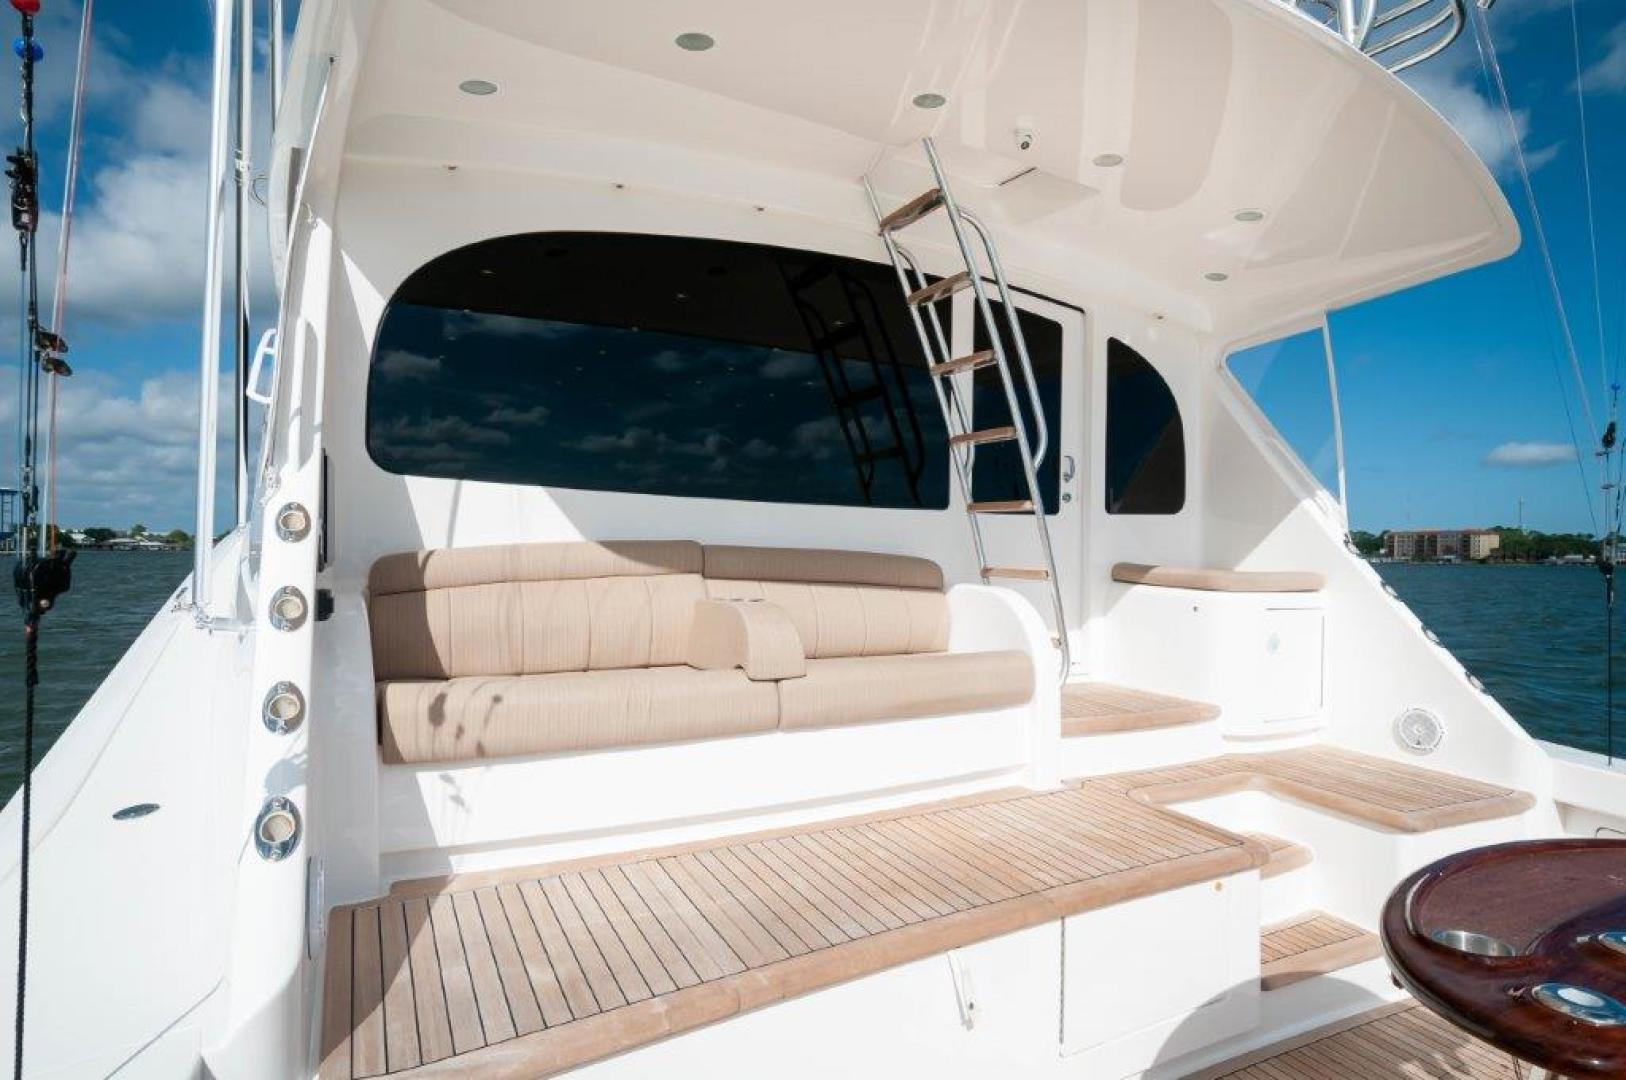 Viking-72 Enclosed Bridge 2017-SHARE E Orange Beach-Alabama-United States-2017 72 EB Viking SHARE-E Cockpit-1233217 | Thumbnail